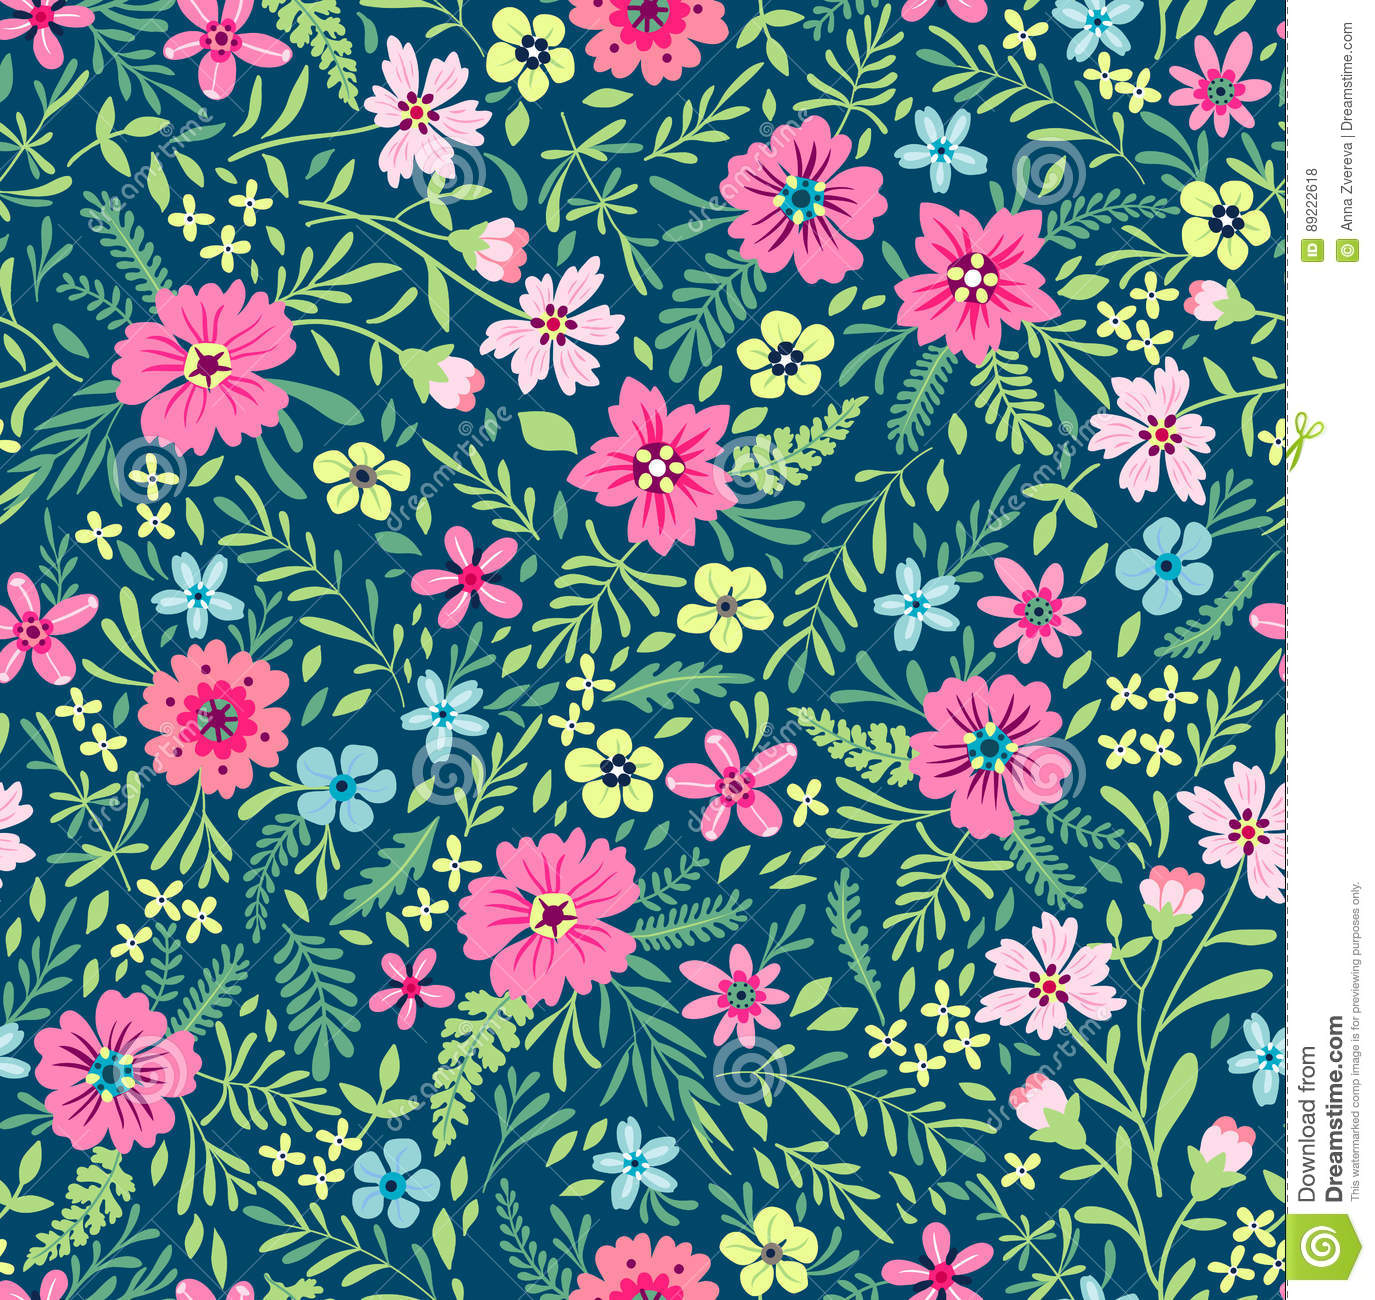 Cute Floral Pattern Stock Vector Illustration Of Meadow 89222618